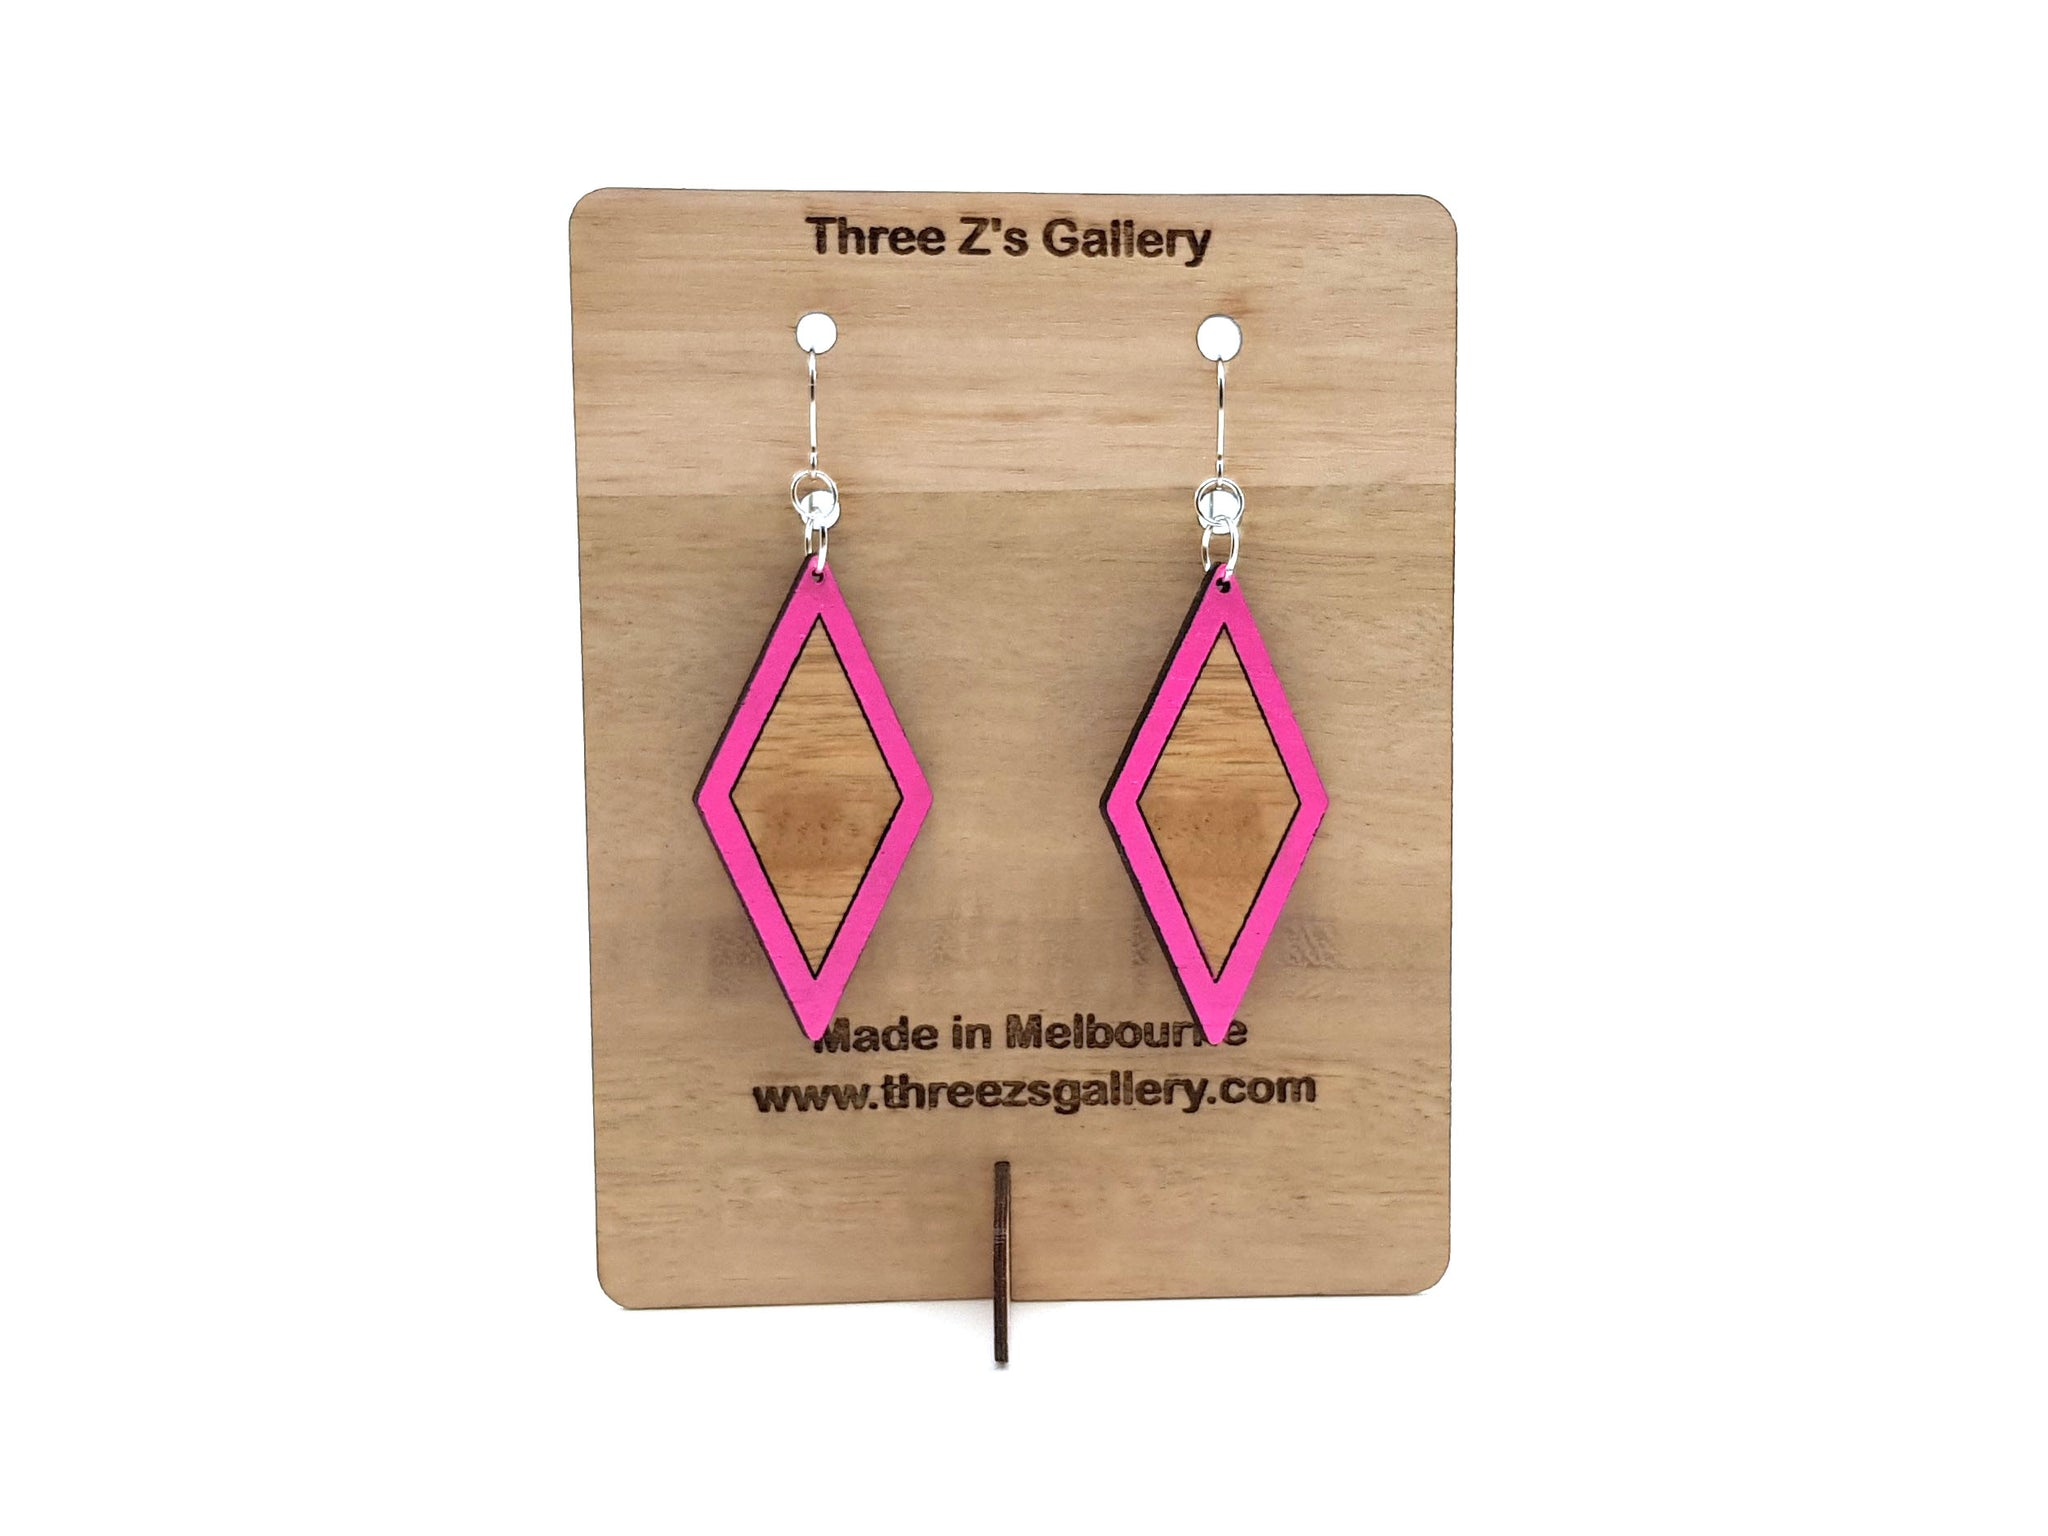 Diamond shaped earrings with a painted edge to highlight the grain of the wood.  measures 7cm in length and made with hypoallergenic surgical steel hooks.